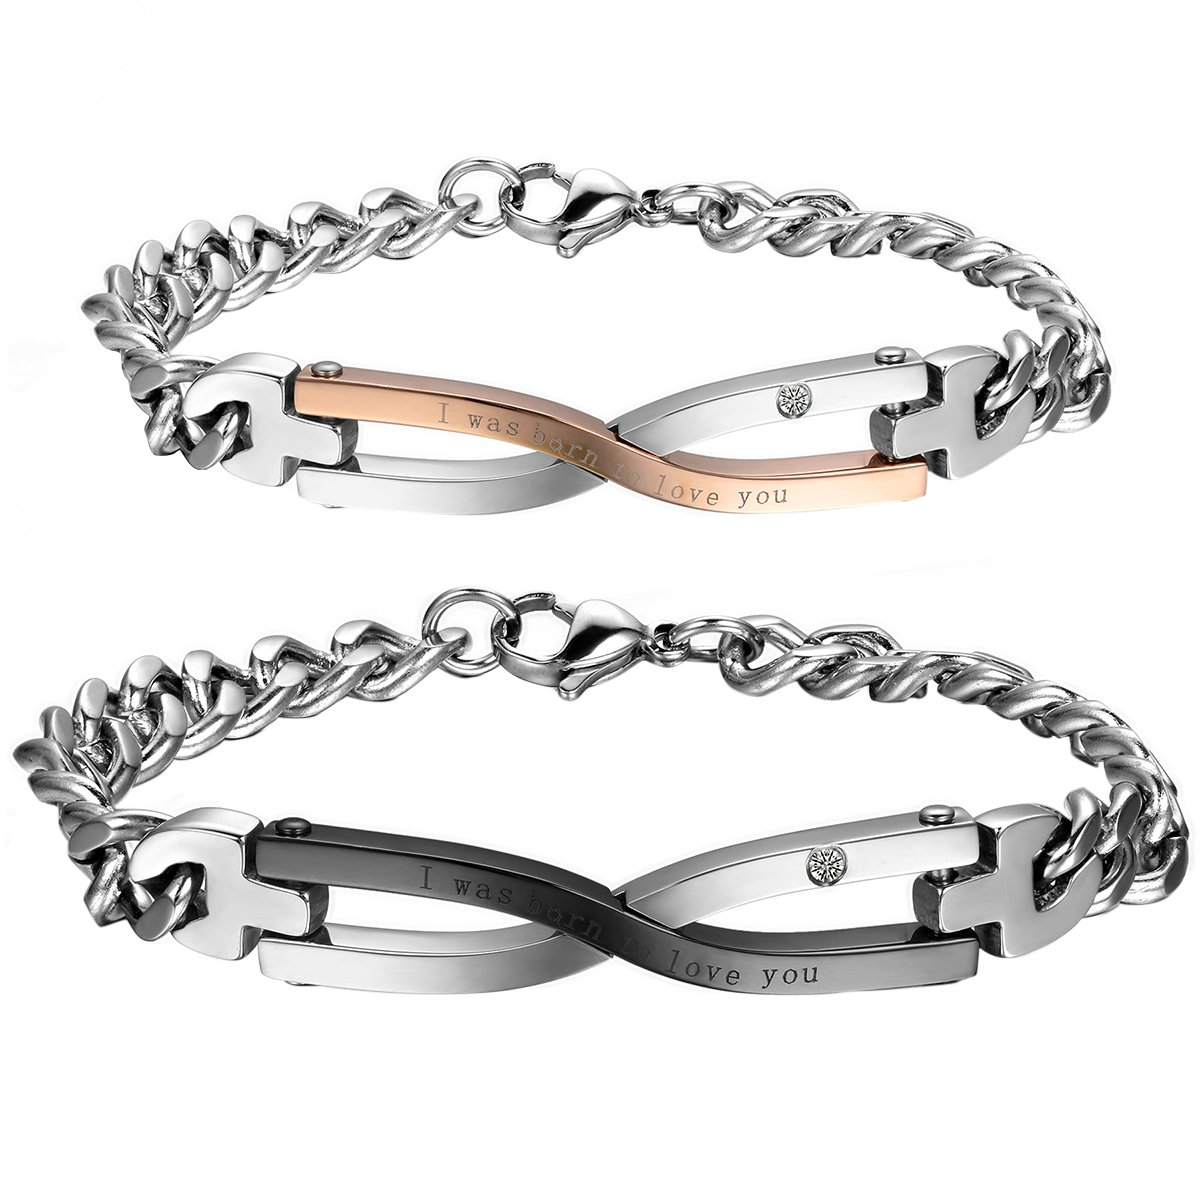 891126883335 Amazon.com  Cupimatch 2PCS Stainless Steel Matching Love Couples Bangle  Bracelets Link Chain Gift (Infinity)  Jewelry